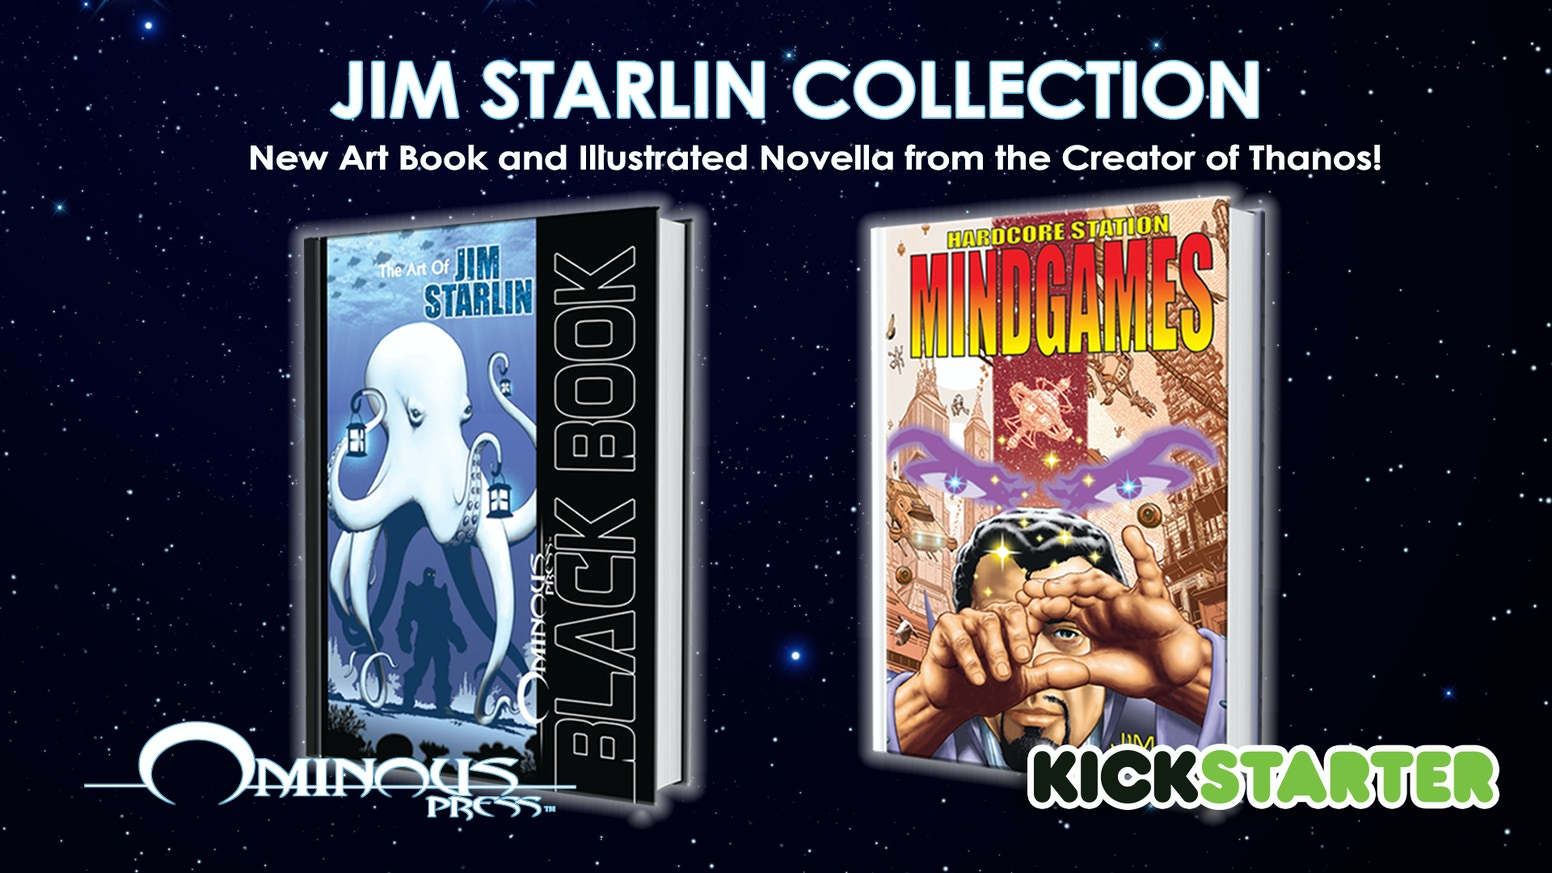 Cosmic Master Jim Starlin's Art Book and Illustrated Novella